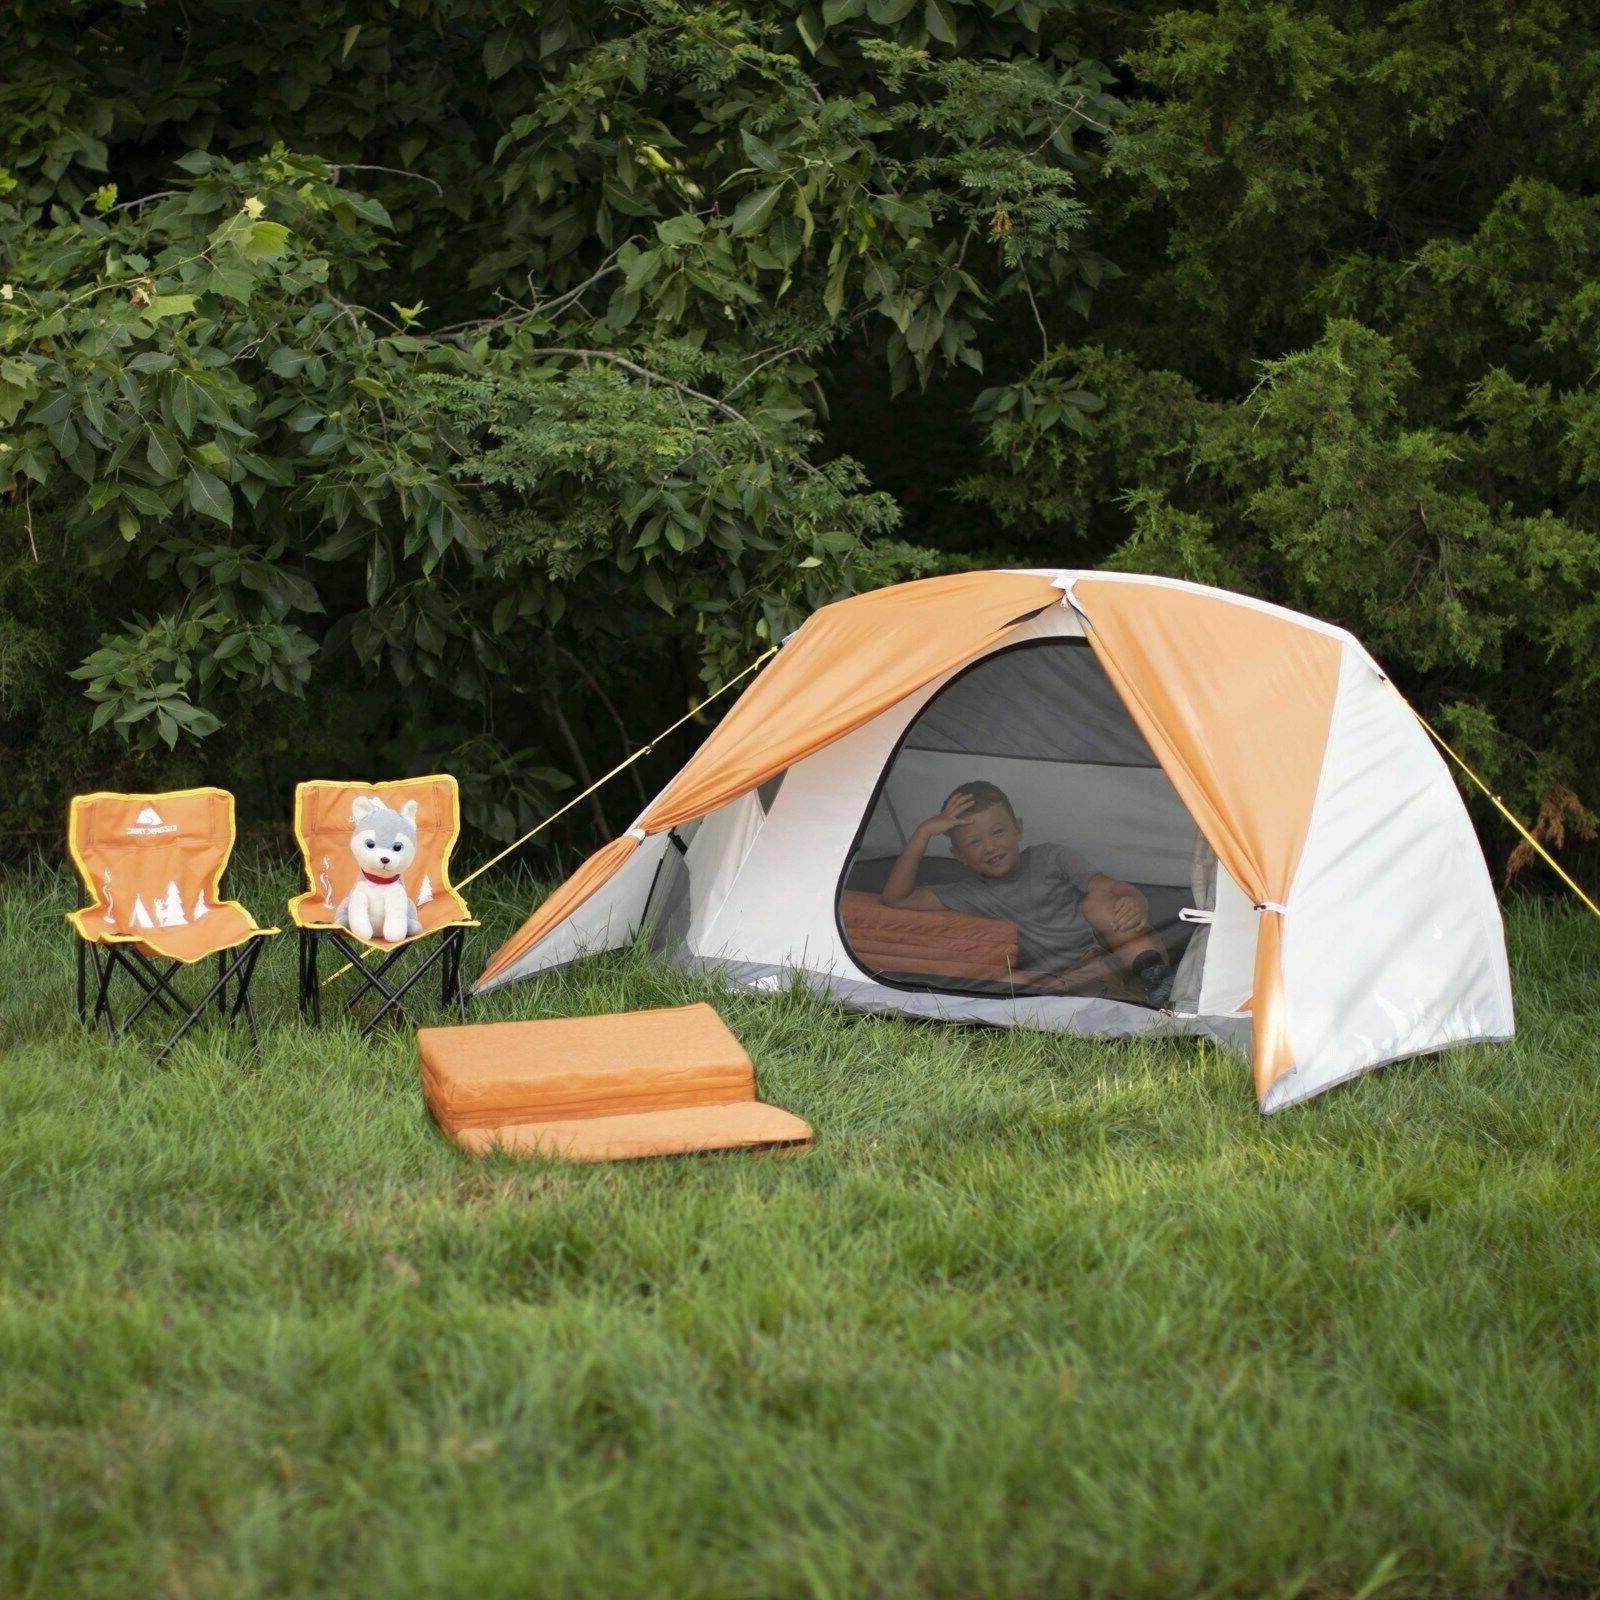 Ozark Camping Kit with Chairs, and Sleeping Pads